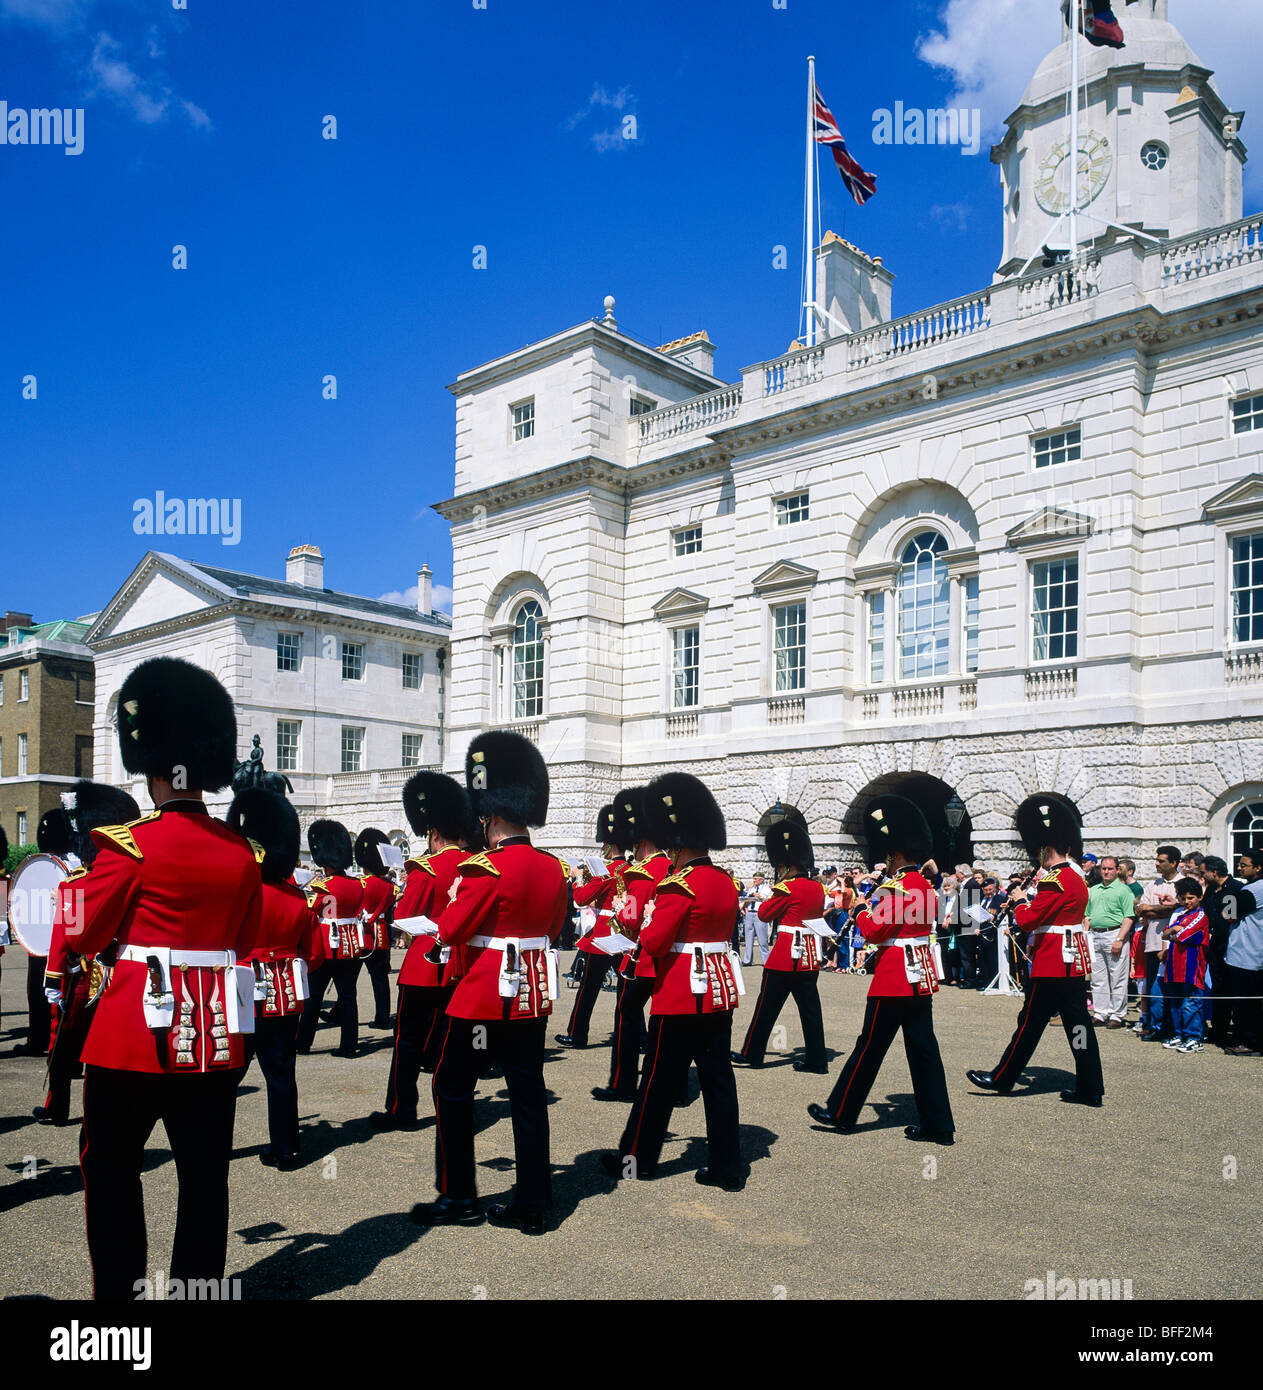 Royal Welsh guards marching band Whitehall London Great Britain Stock Photo